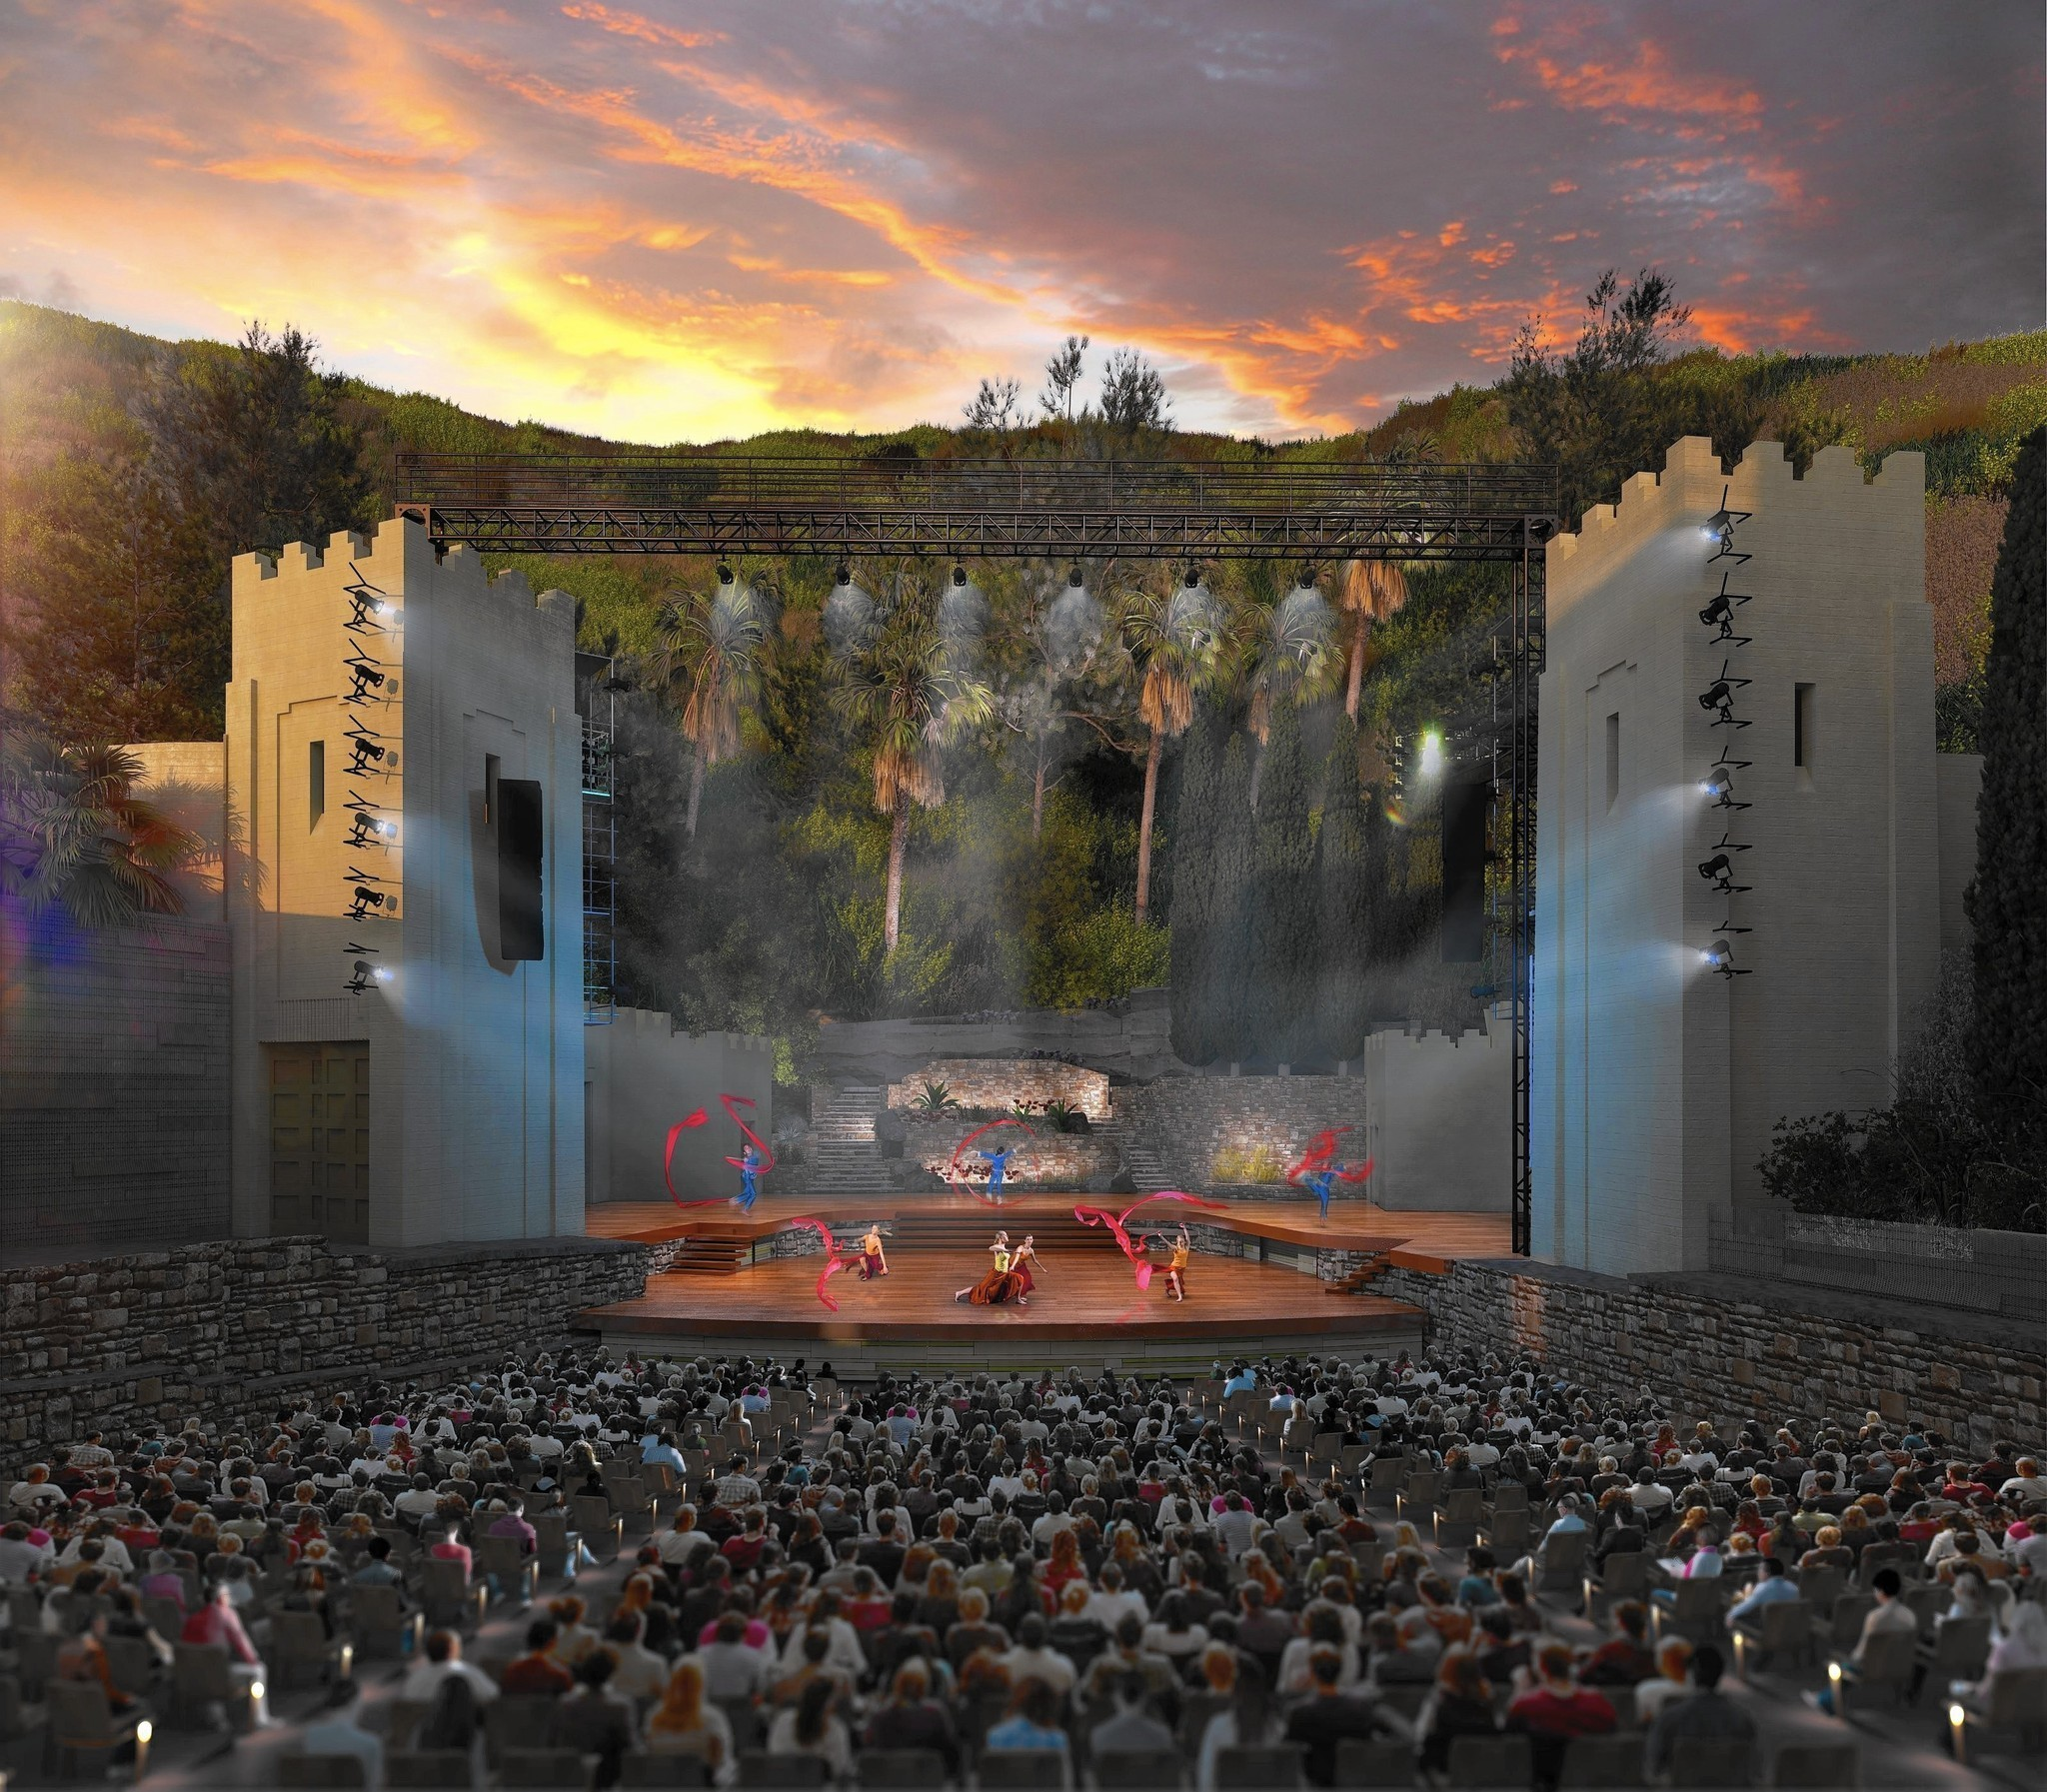 John anson ford theatres will reopen in july with historic outdoor venue refurbished la times